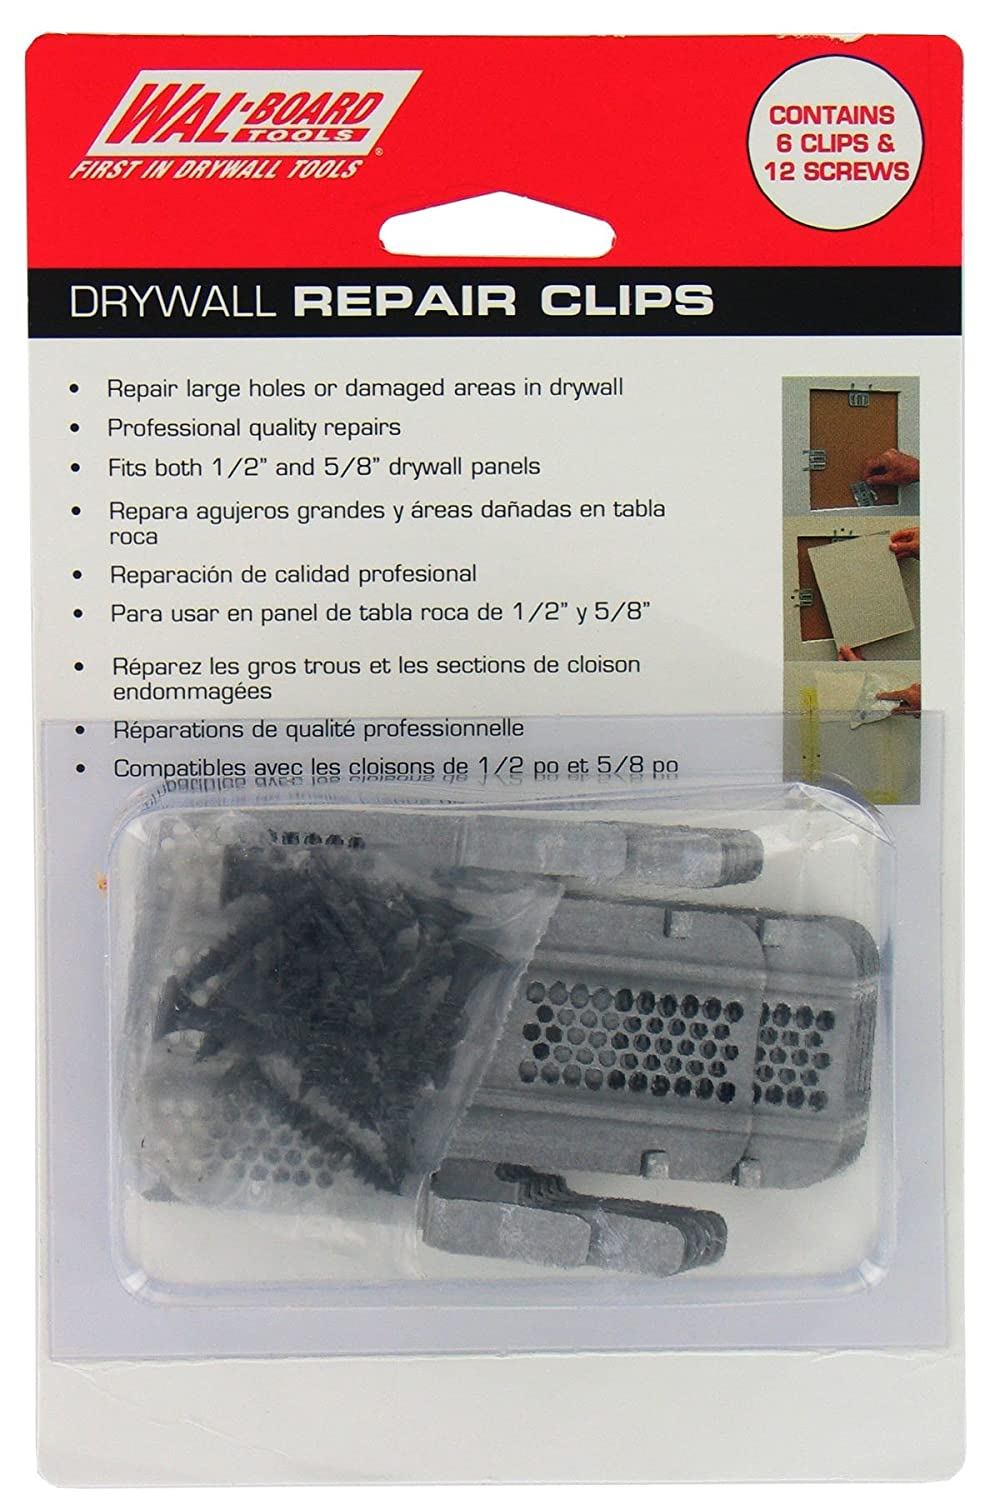 How to repair large hole in drywall - Walboard Tool 54 014 6 Count Drywall Repair Clips Wall Spackles Amazon Com